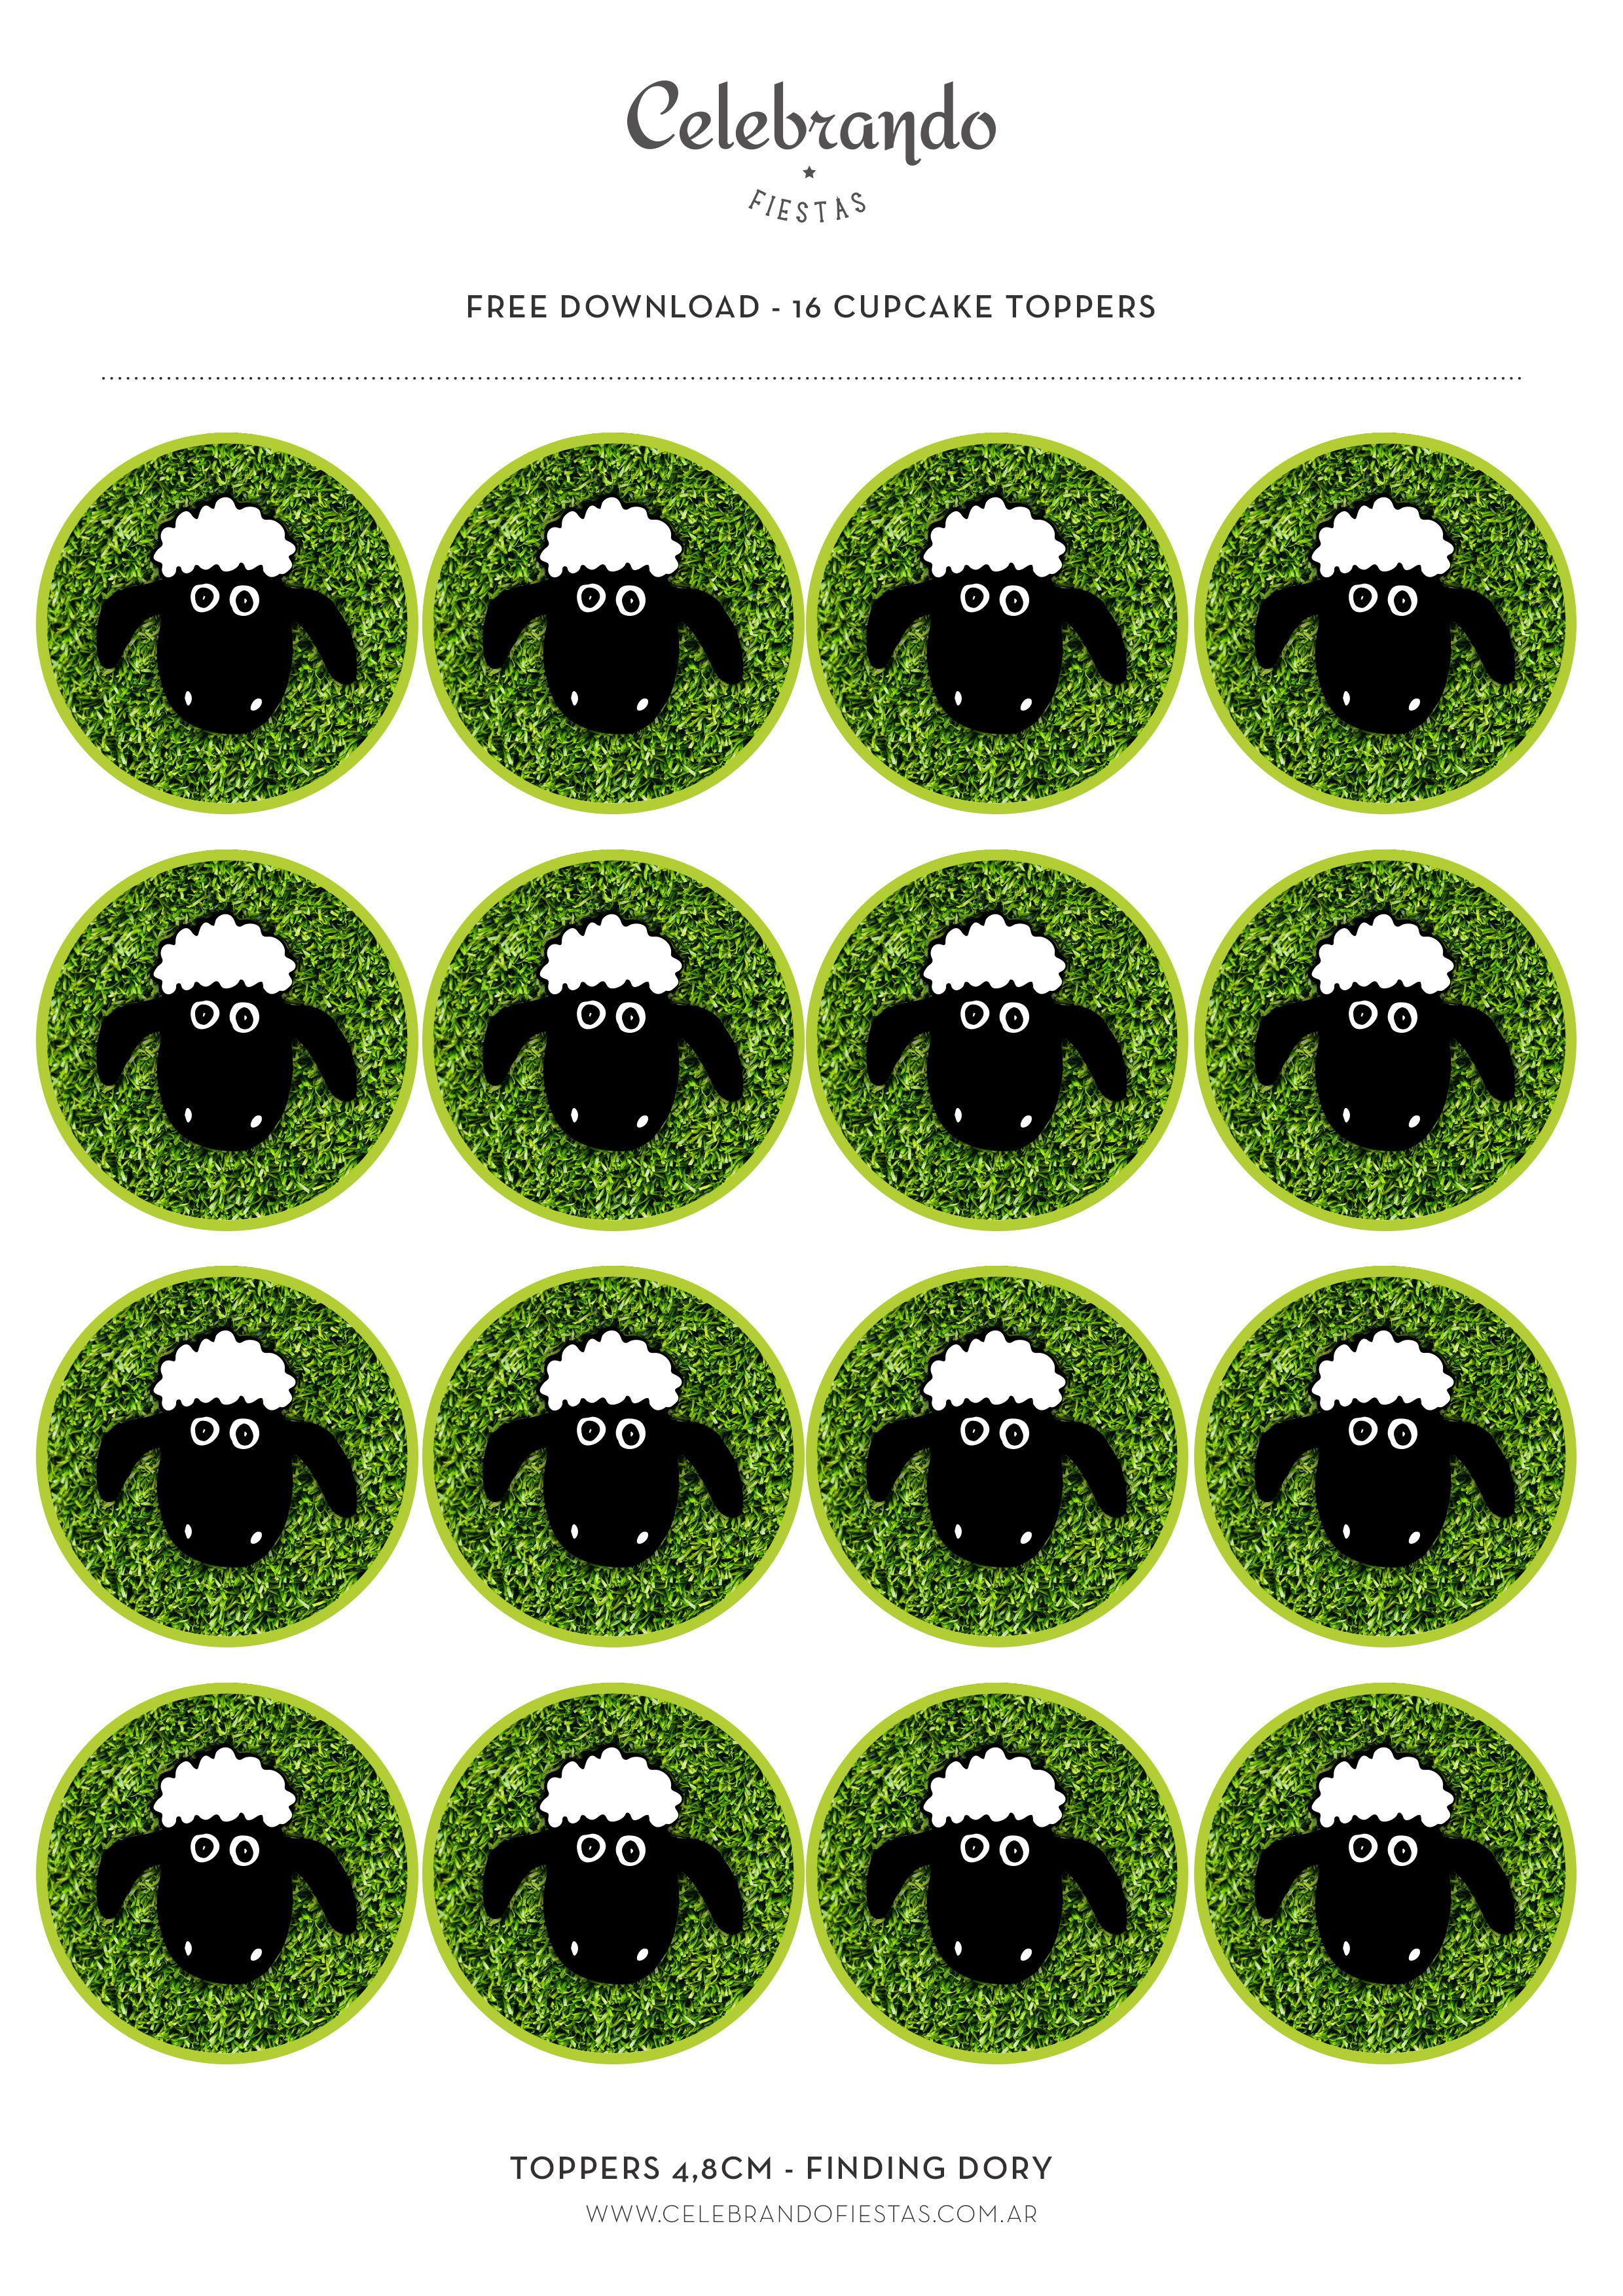 shaun_the_sheep_toppers_free_download.jpg 2.479×3.508 piksel